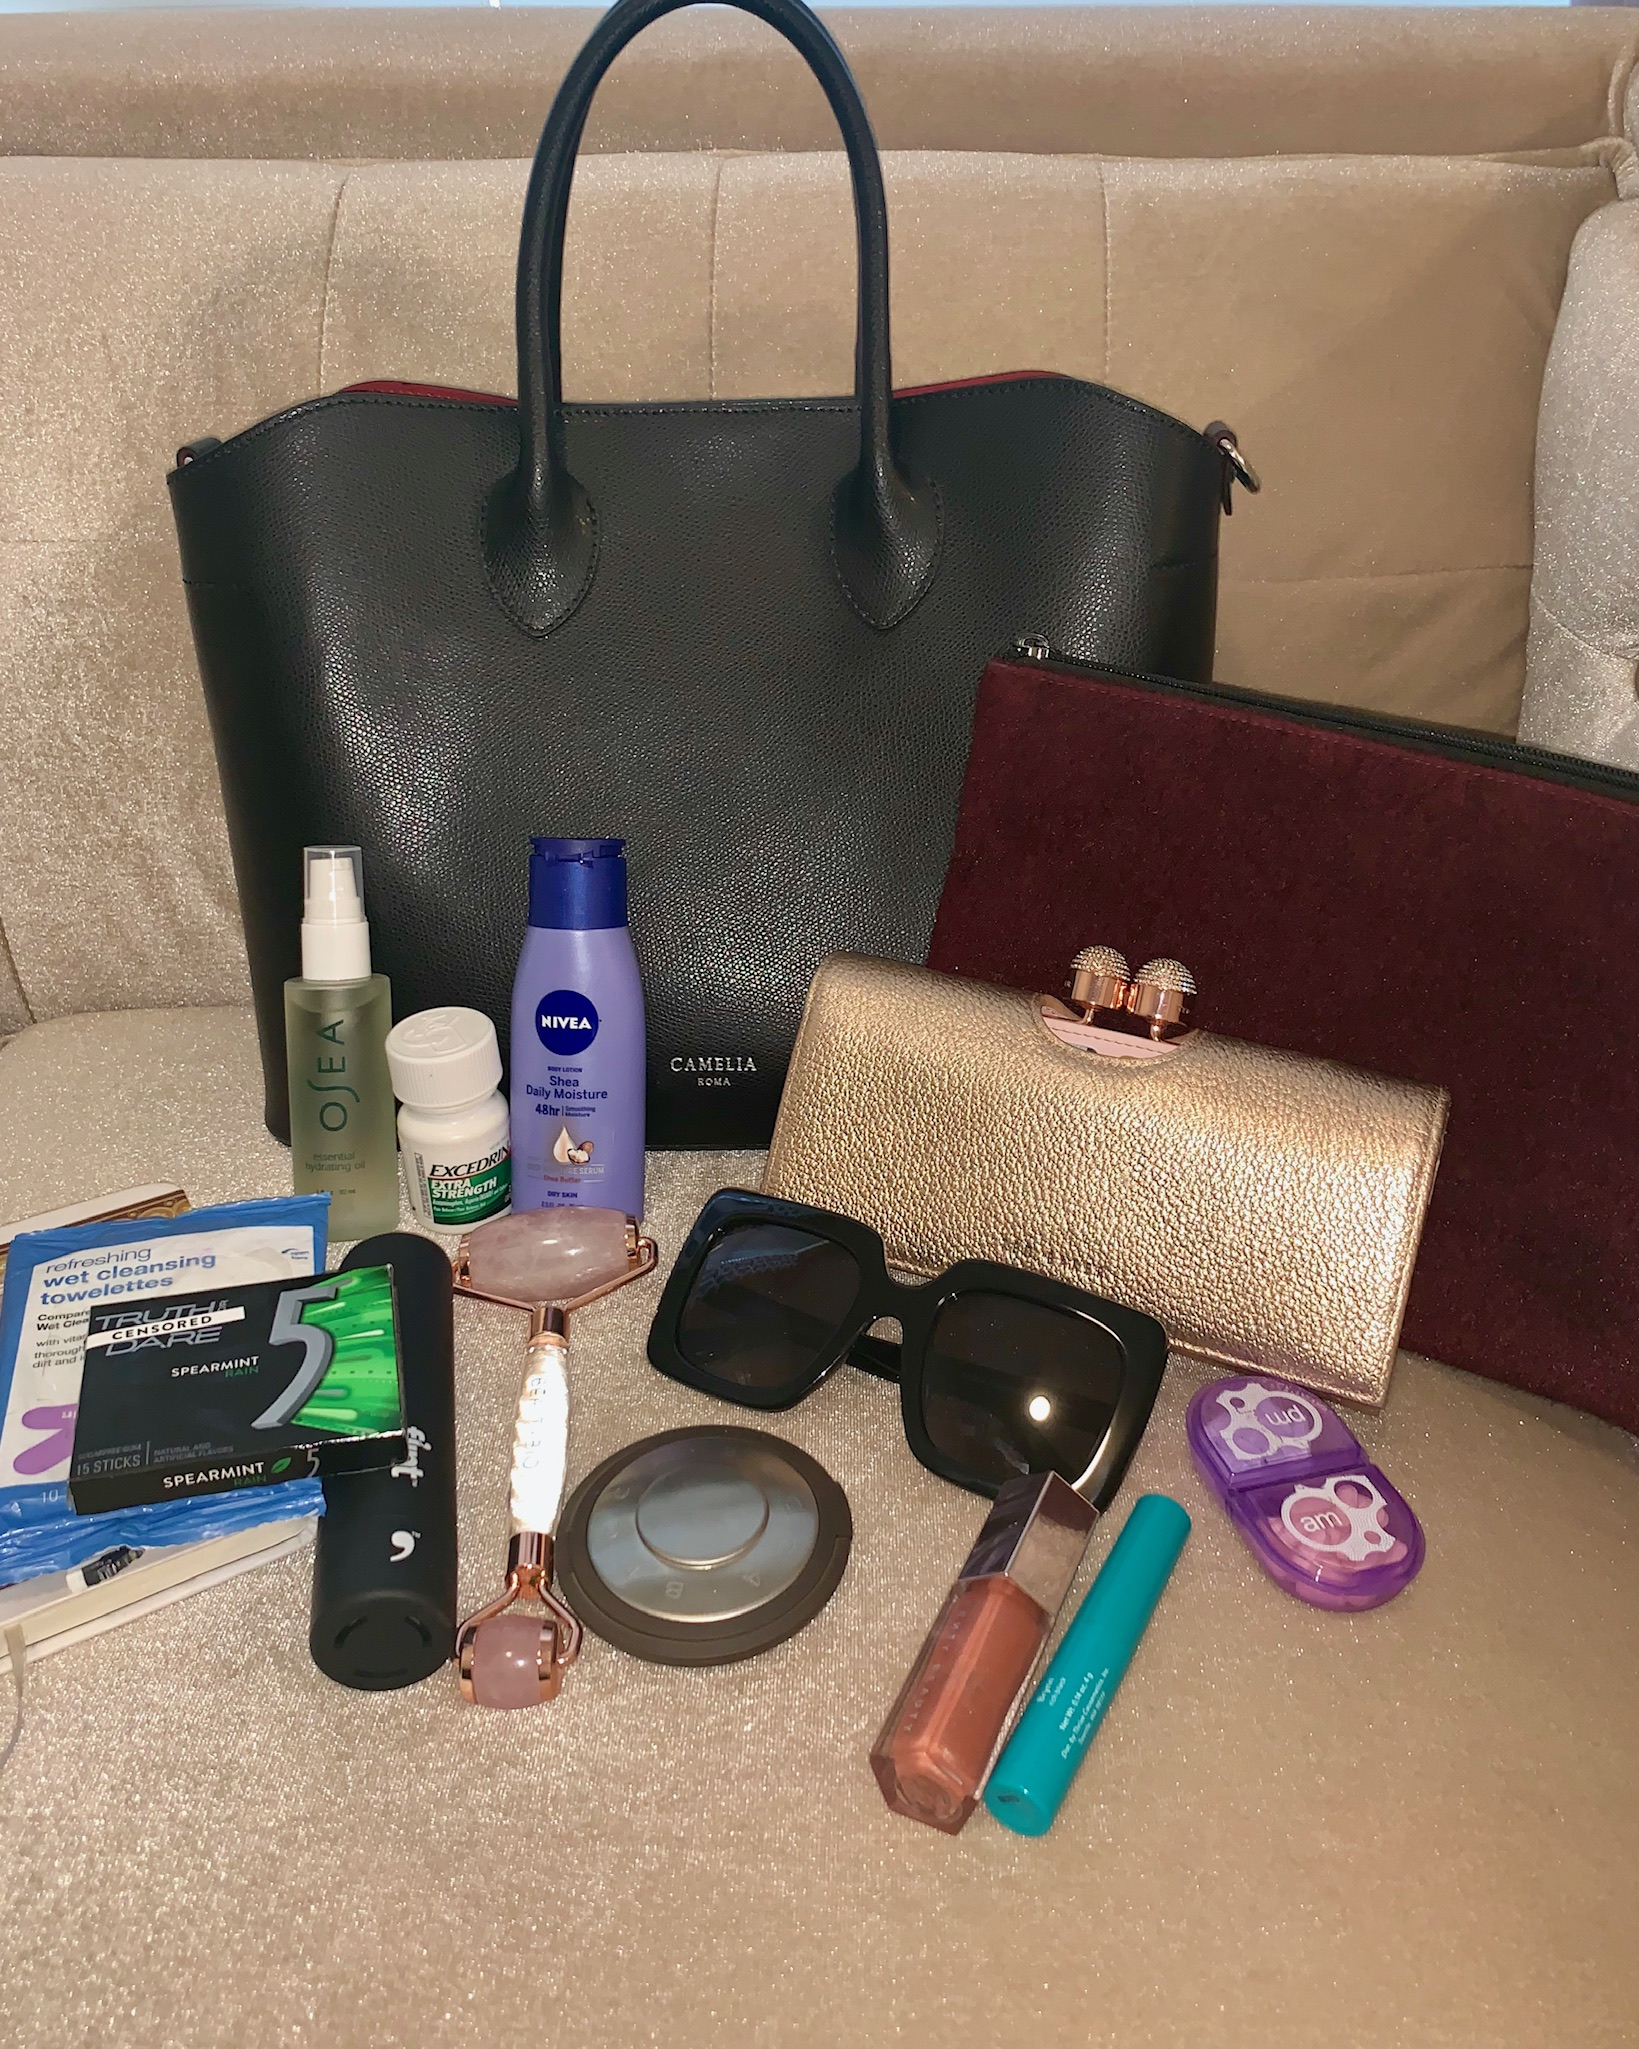 what's in your handbag